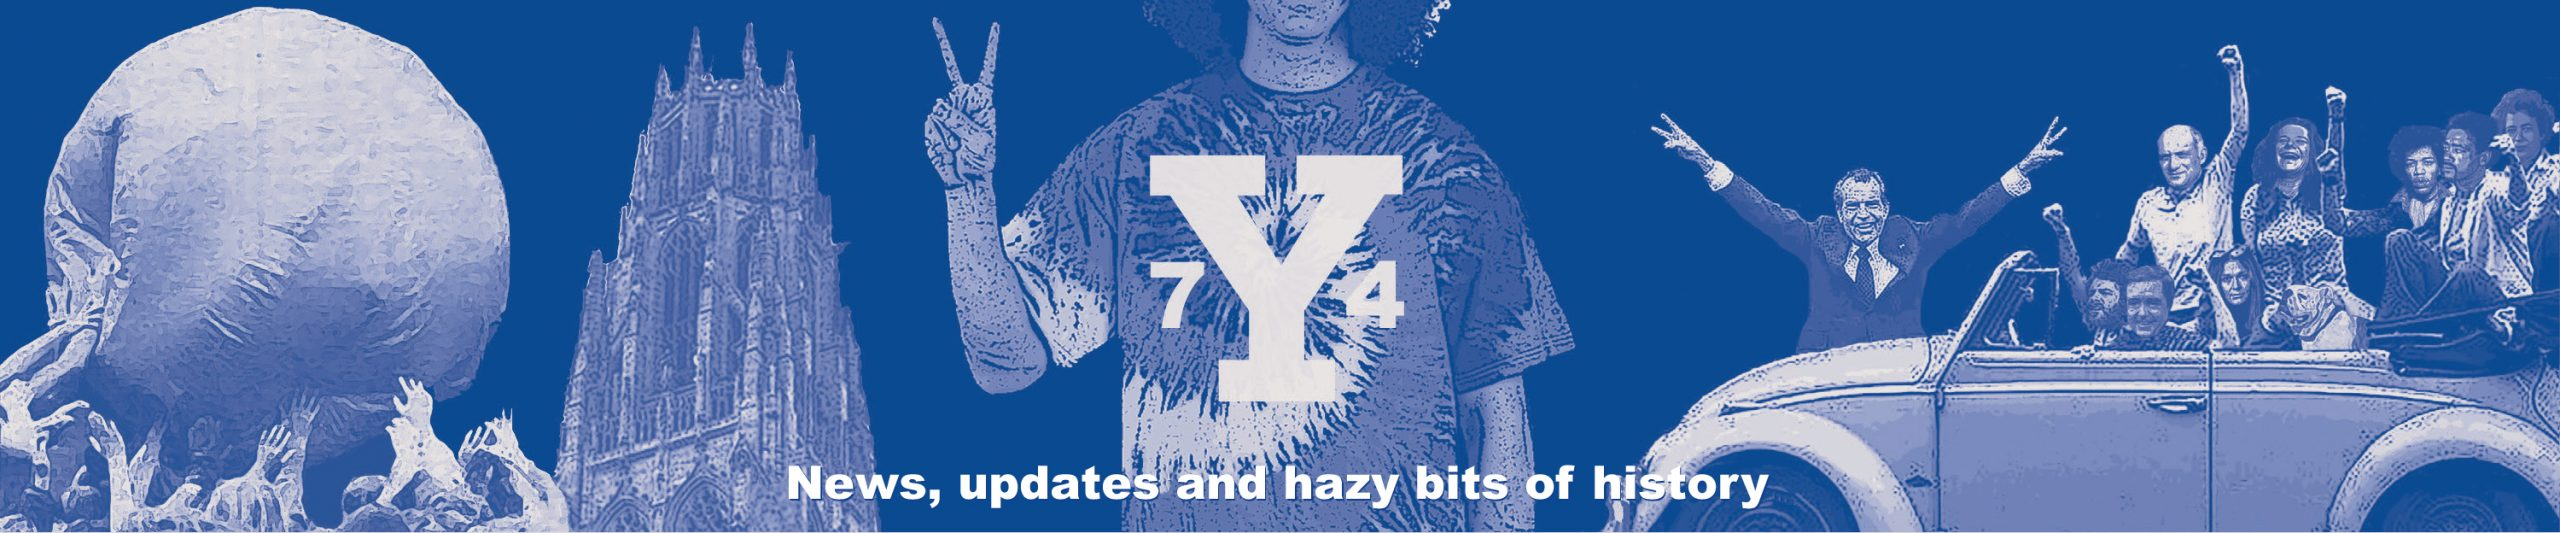 Yale Class of 1974